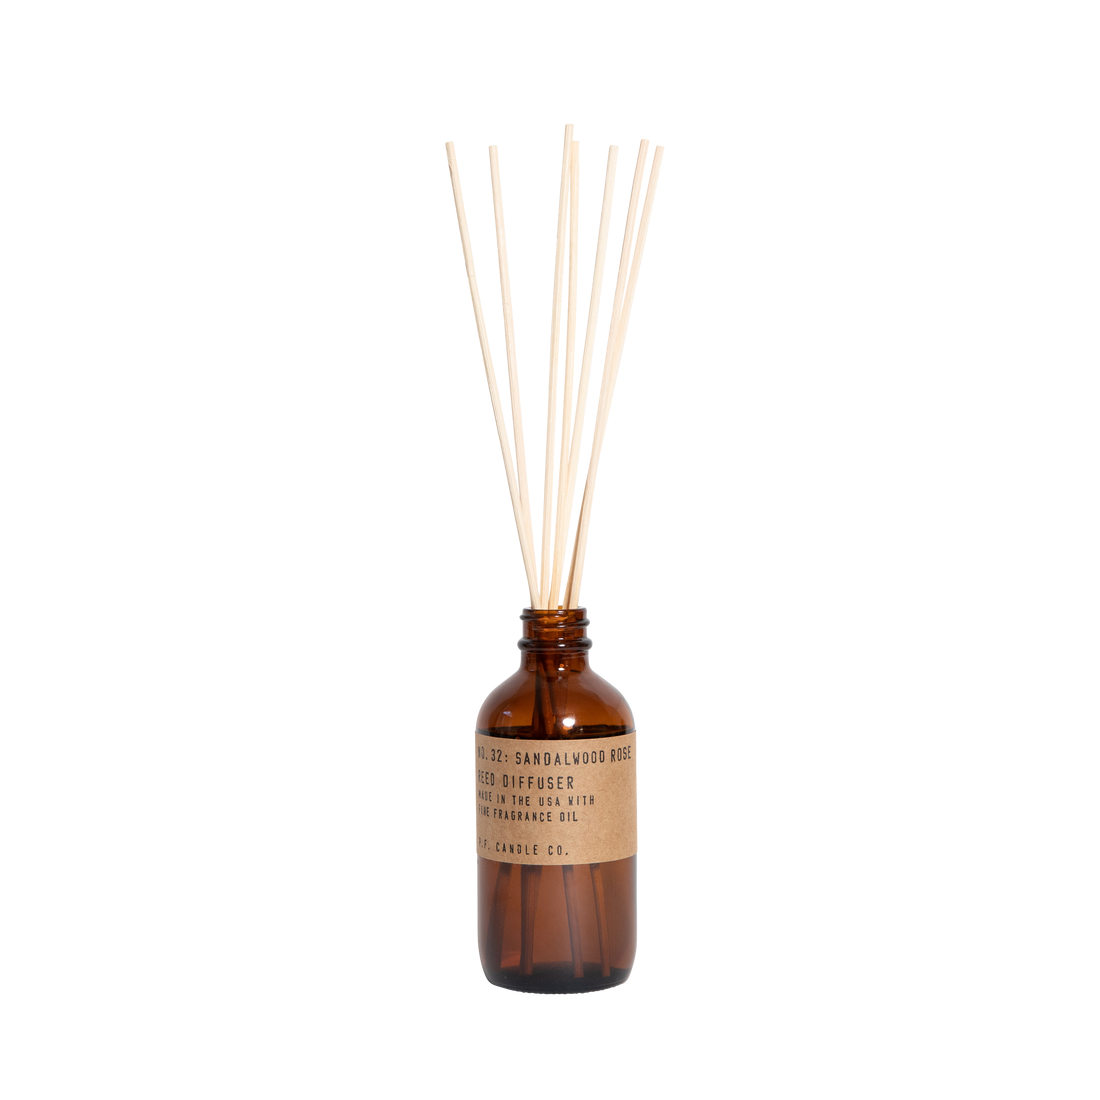 P.F. Candle Co.: Sandalwood Rose Reed Diffuser